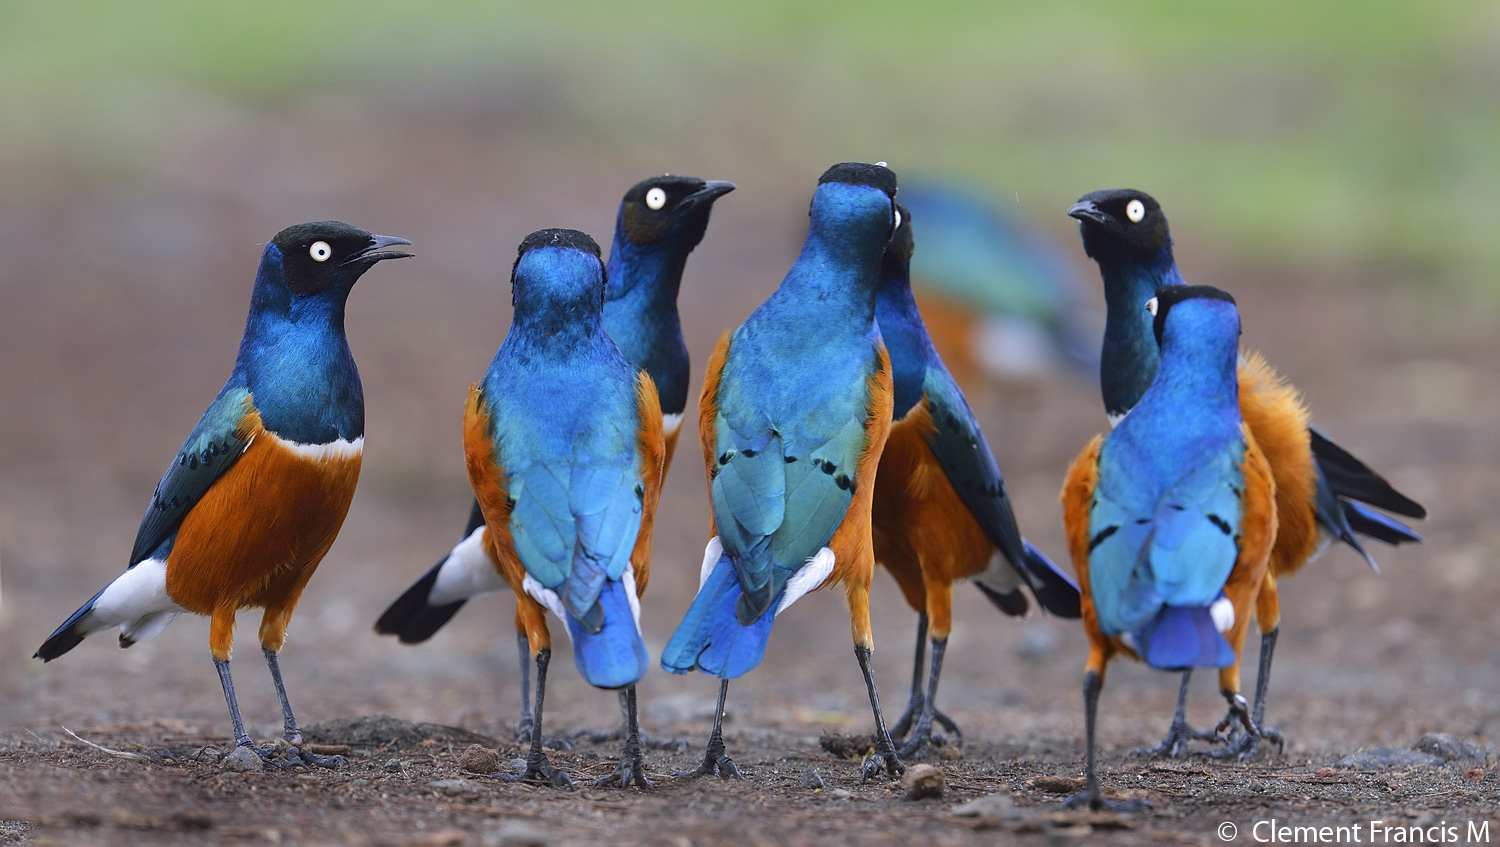 Superb starlings, a bold group of 10